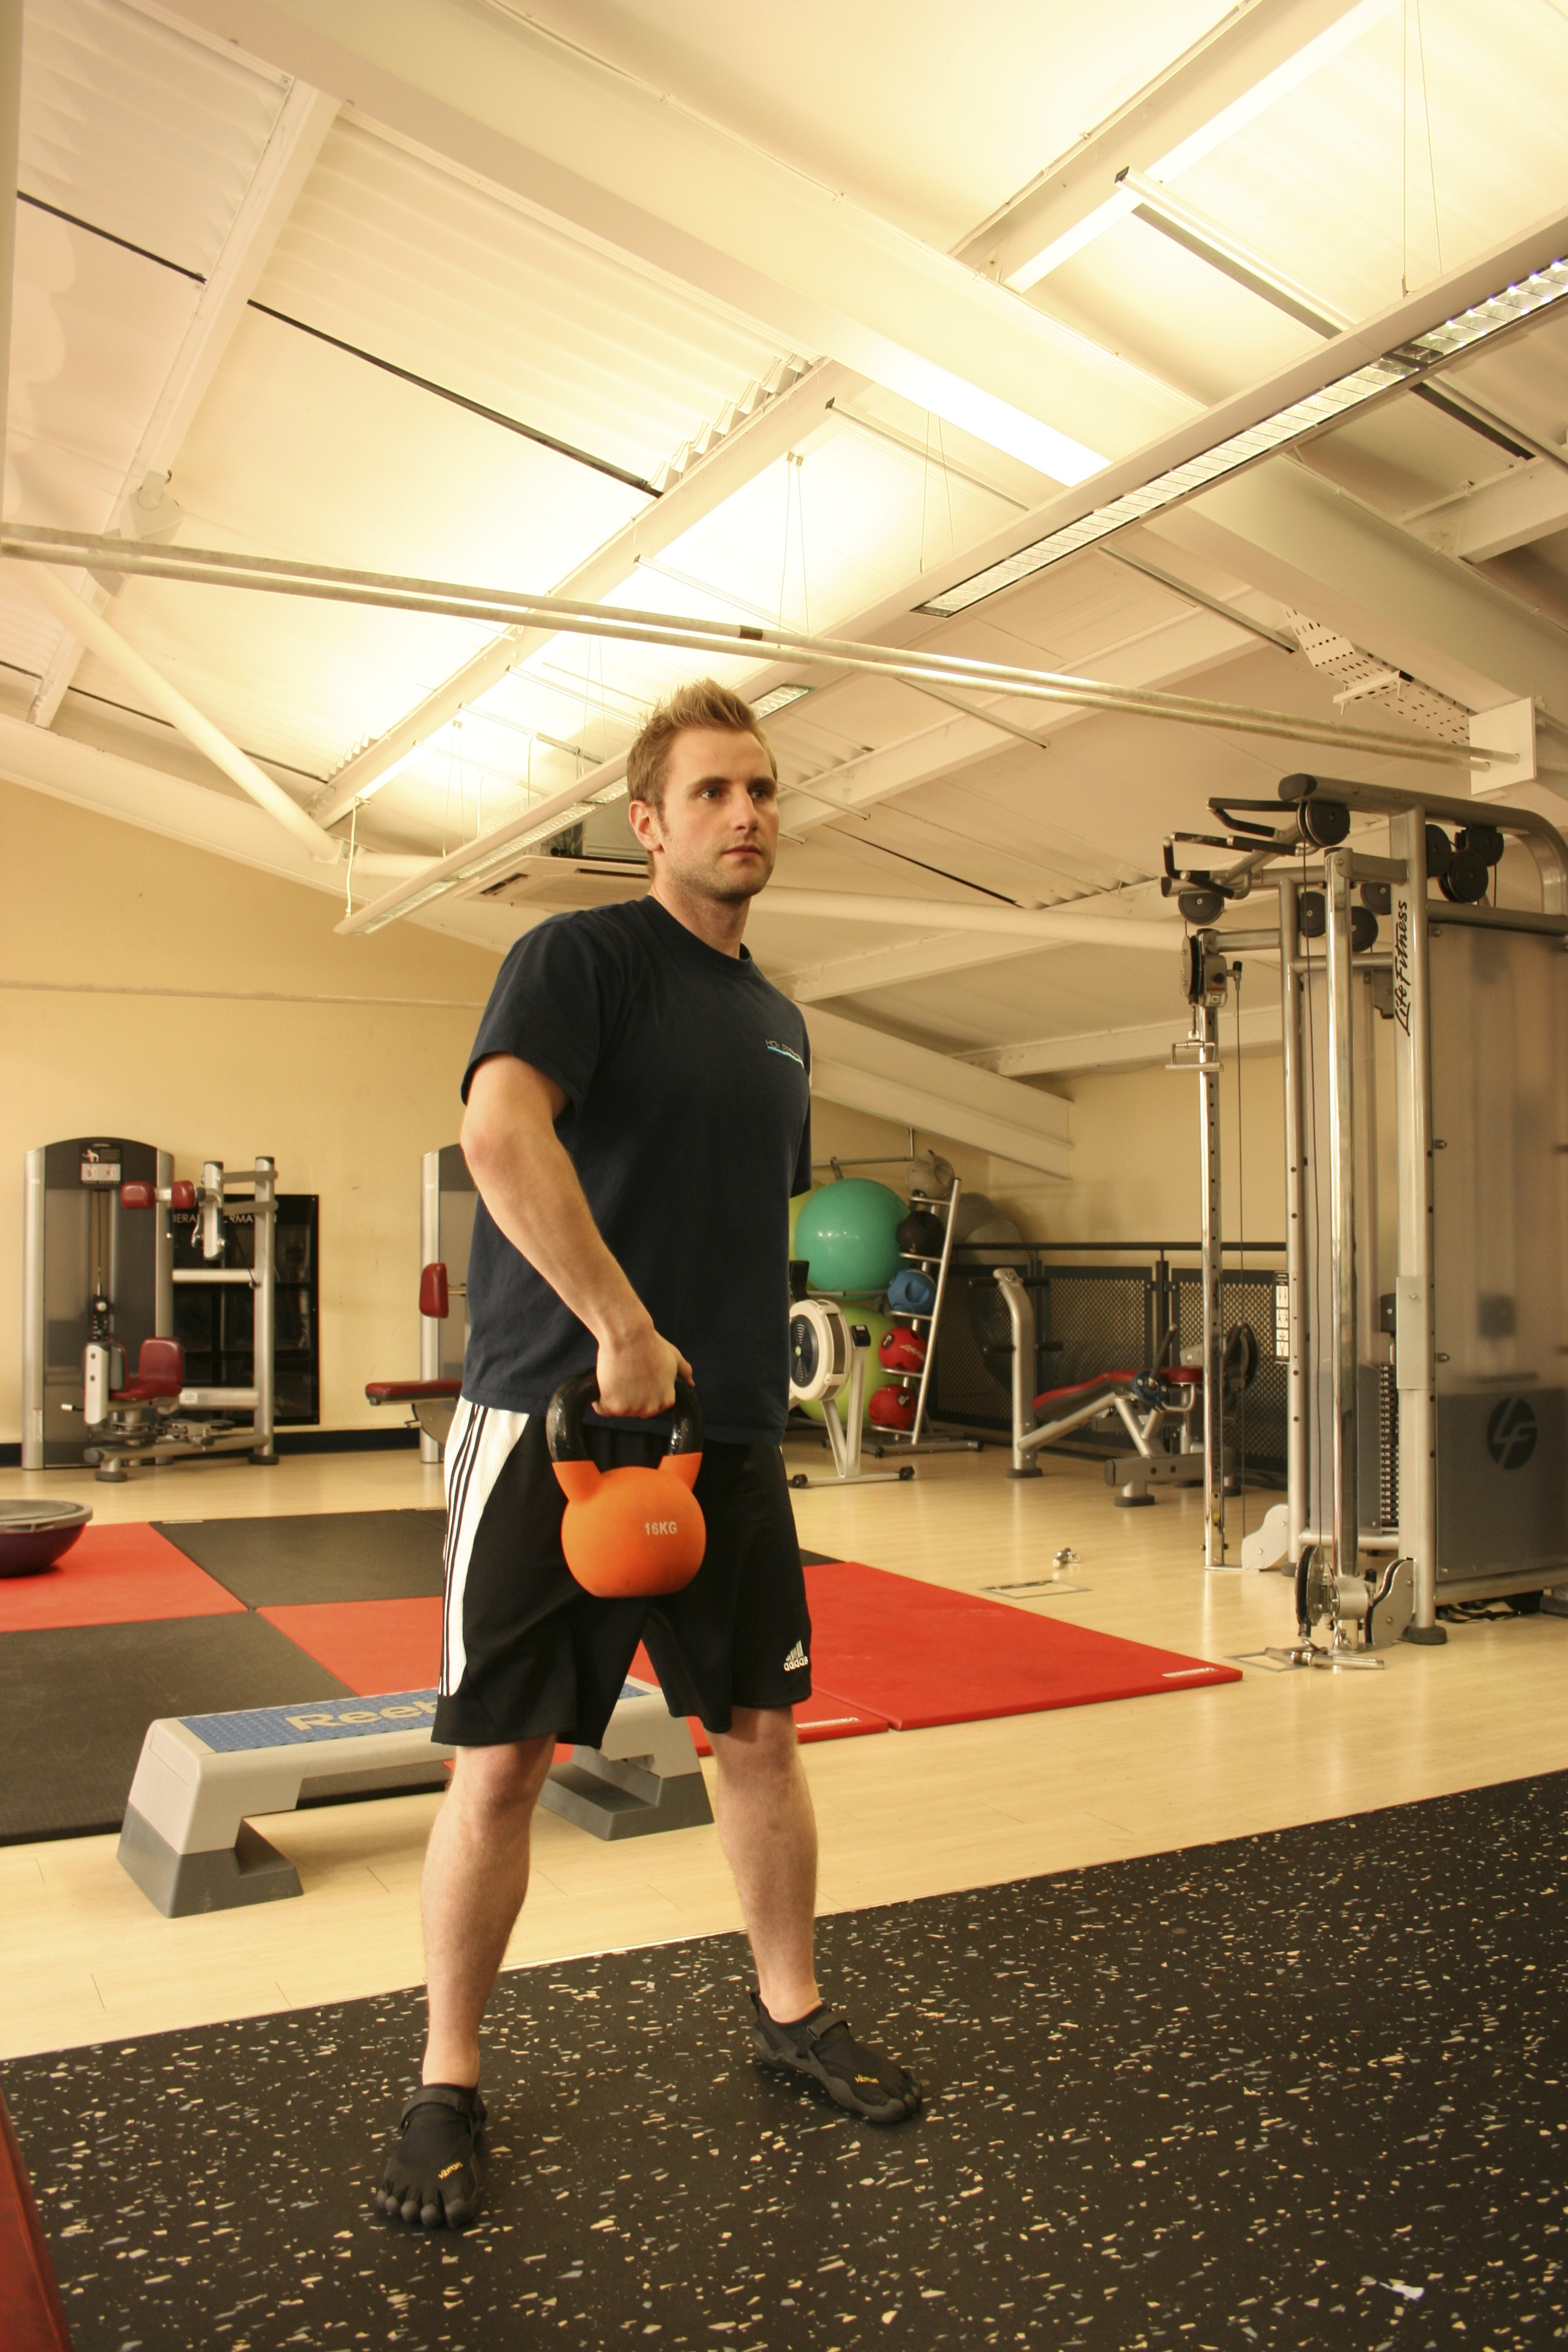 Single Arm Overhead Kettlebell Snatch, Uni-Lateral Exercise, Uni-Lateral Training